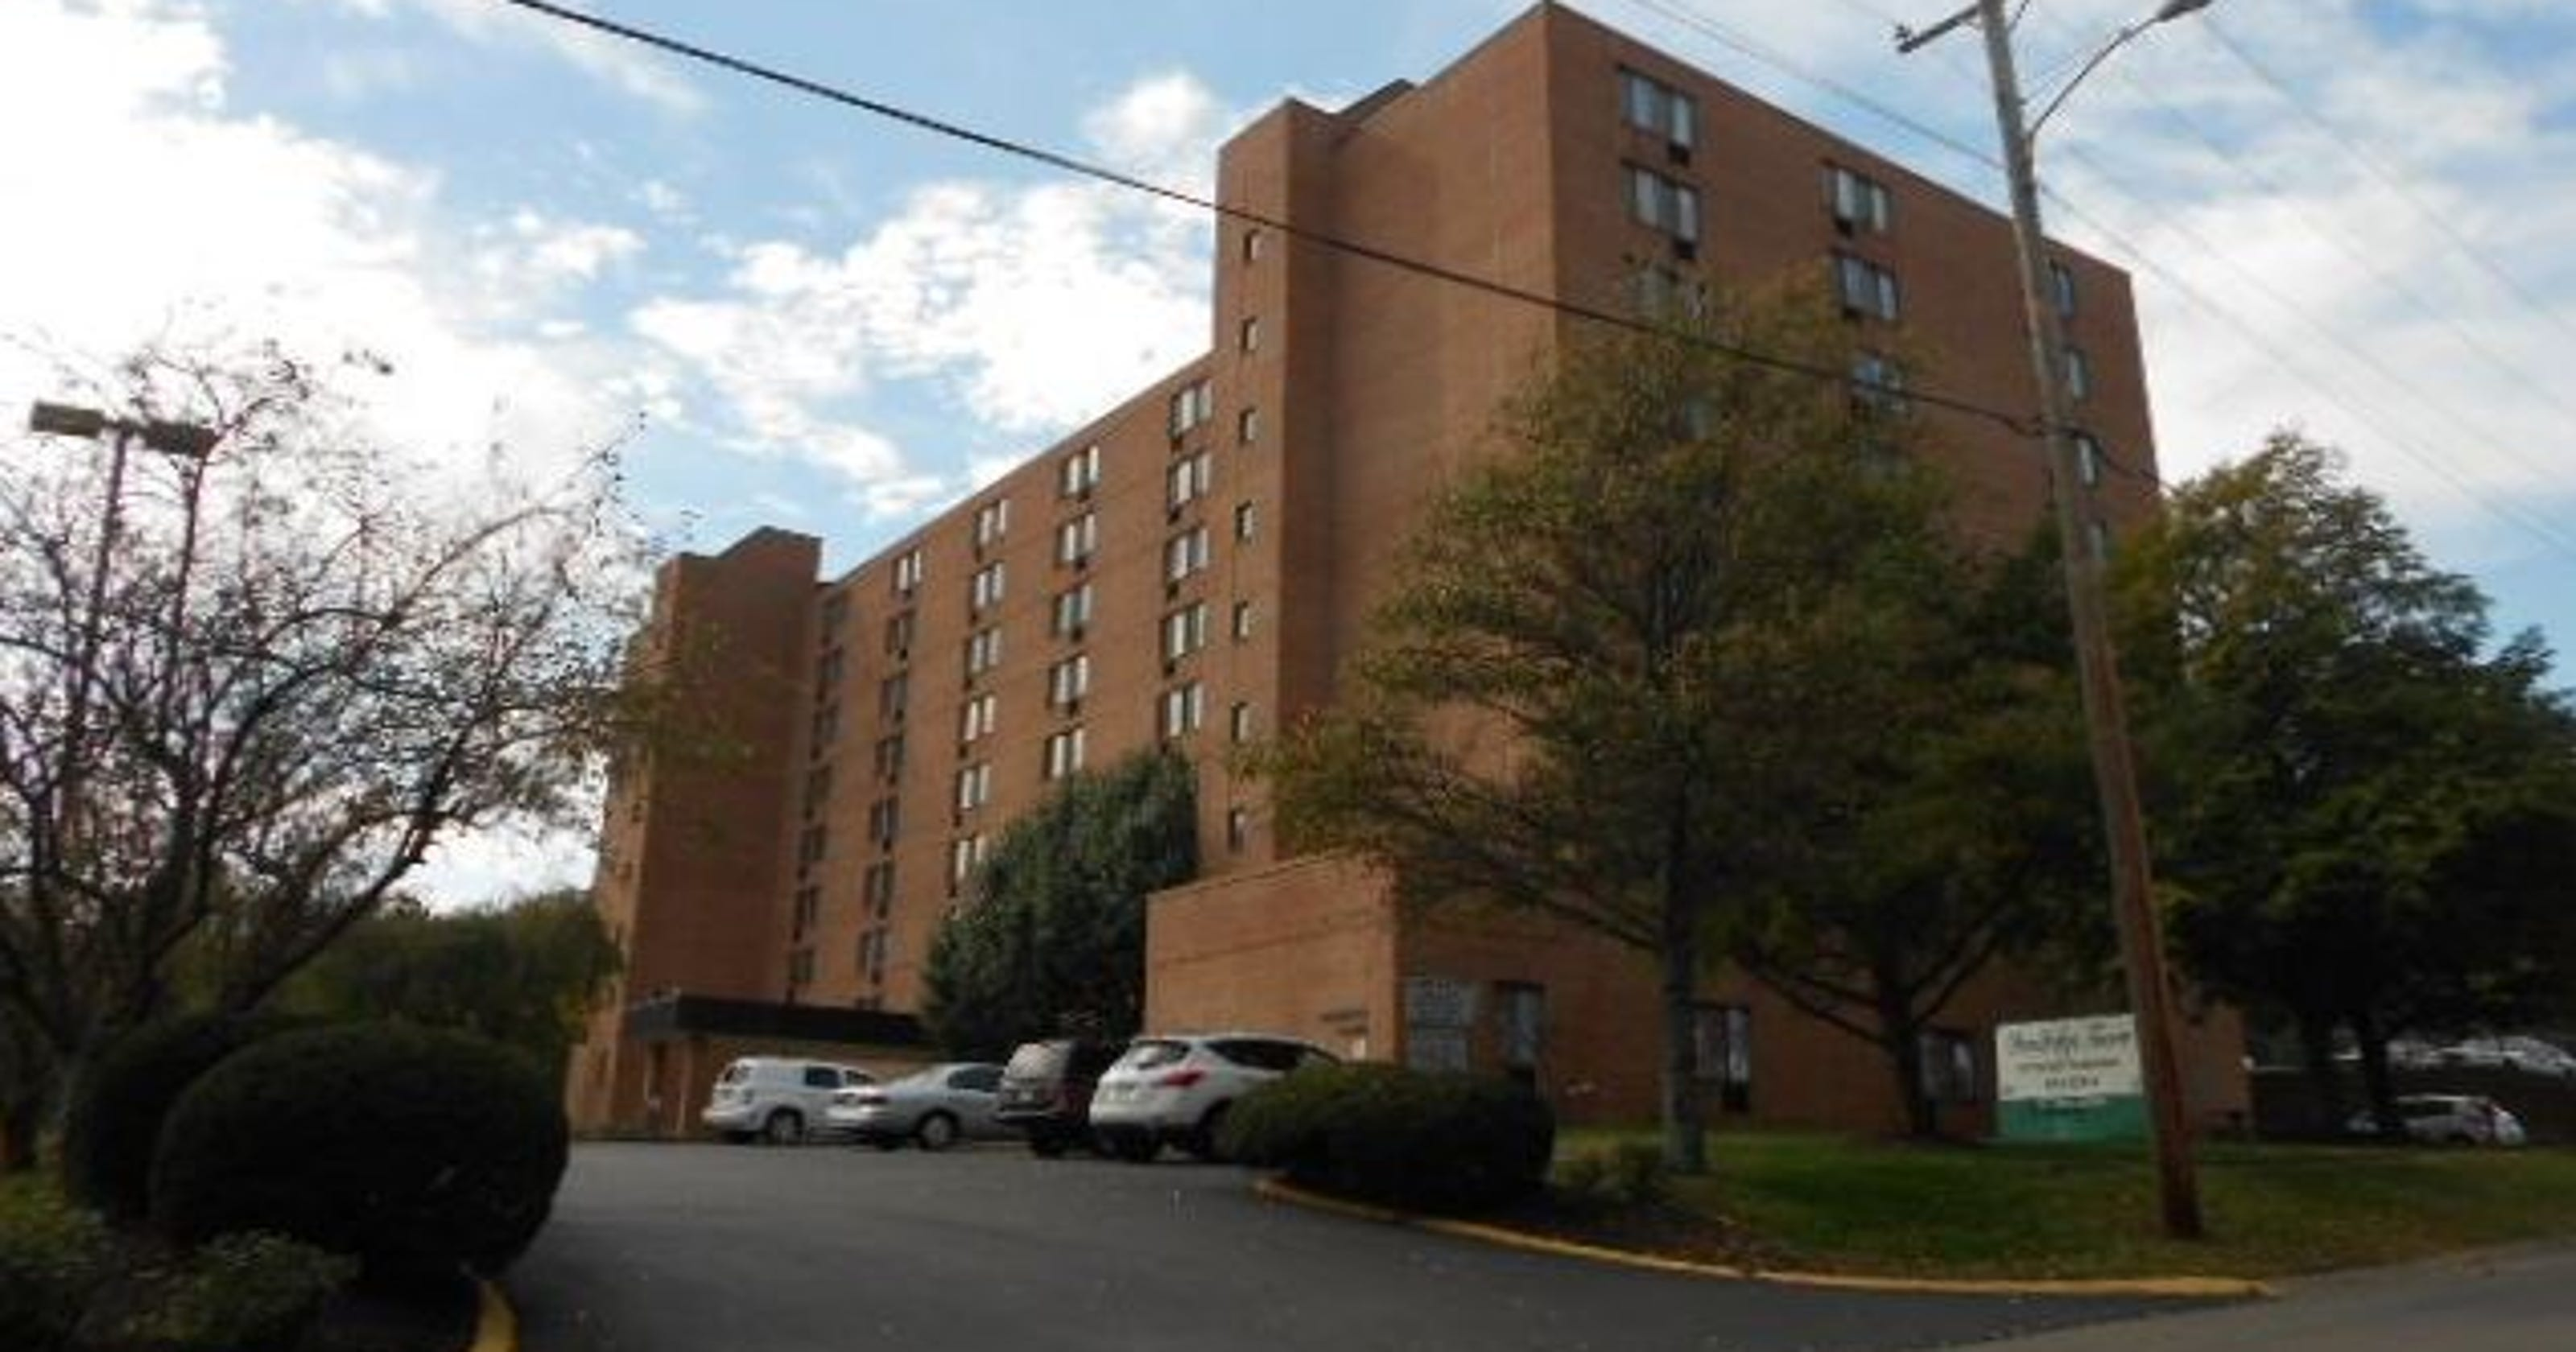 South Nashville subsidized apartments for seniors being sold